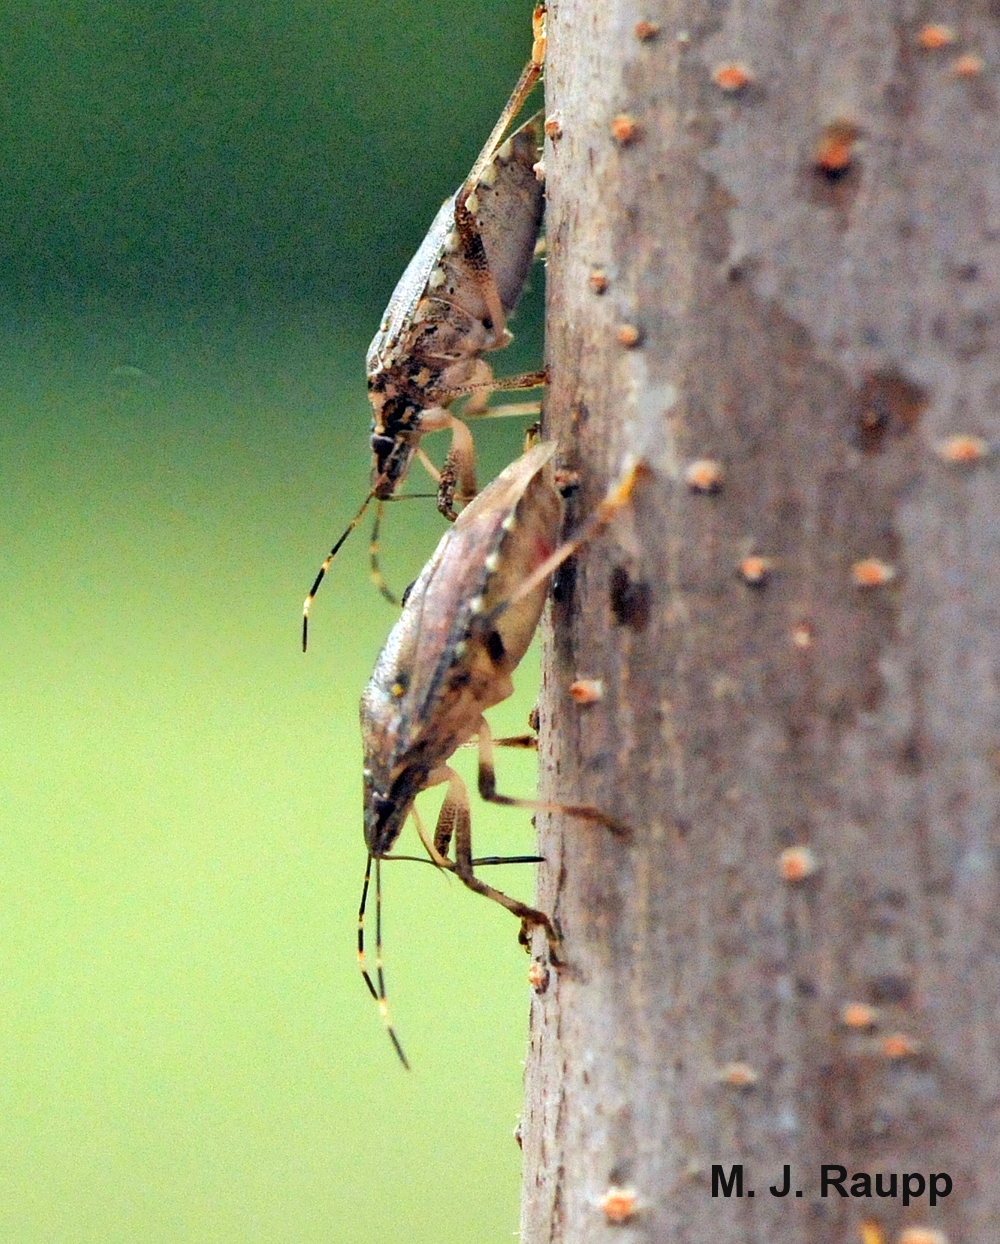 Bark feeding is a strange behavior brown marmorated stink bugs employ in autumn.